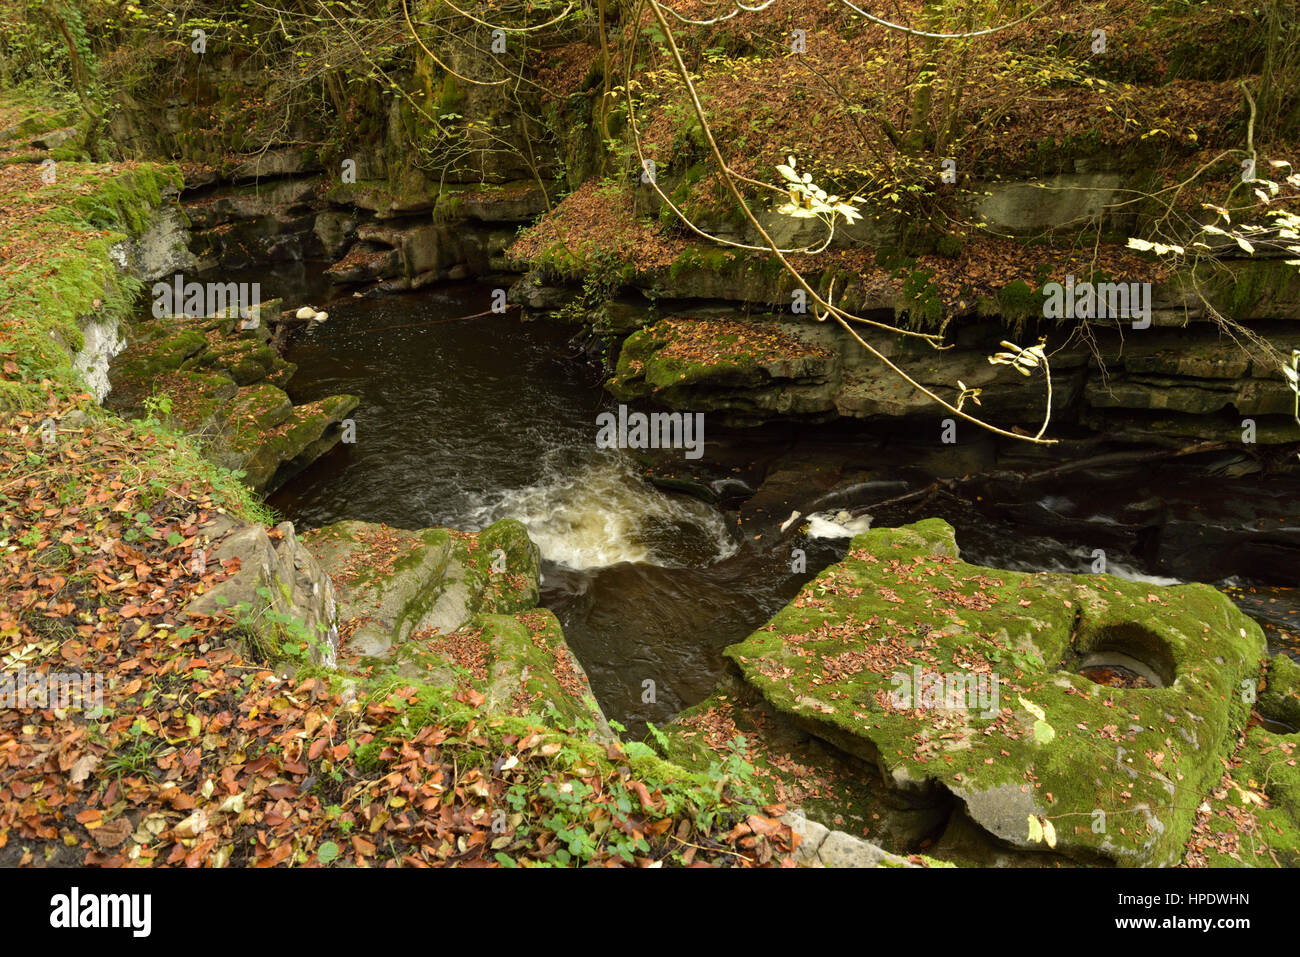 The Taf Fechan River Swirling in Limestone Carved into Curved Shapes Stock Photo